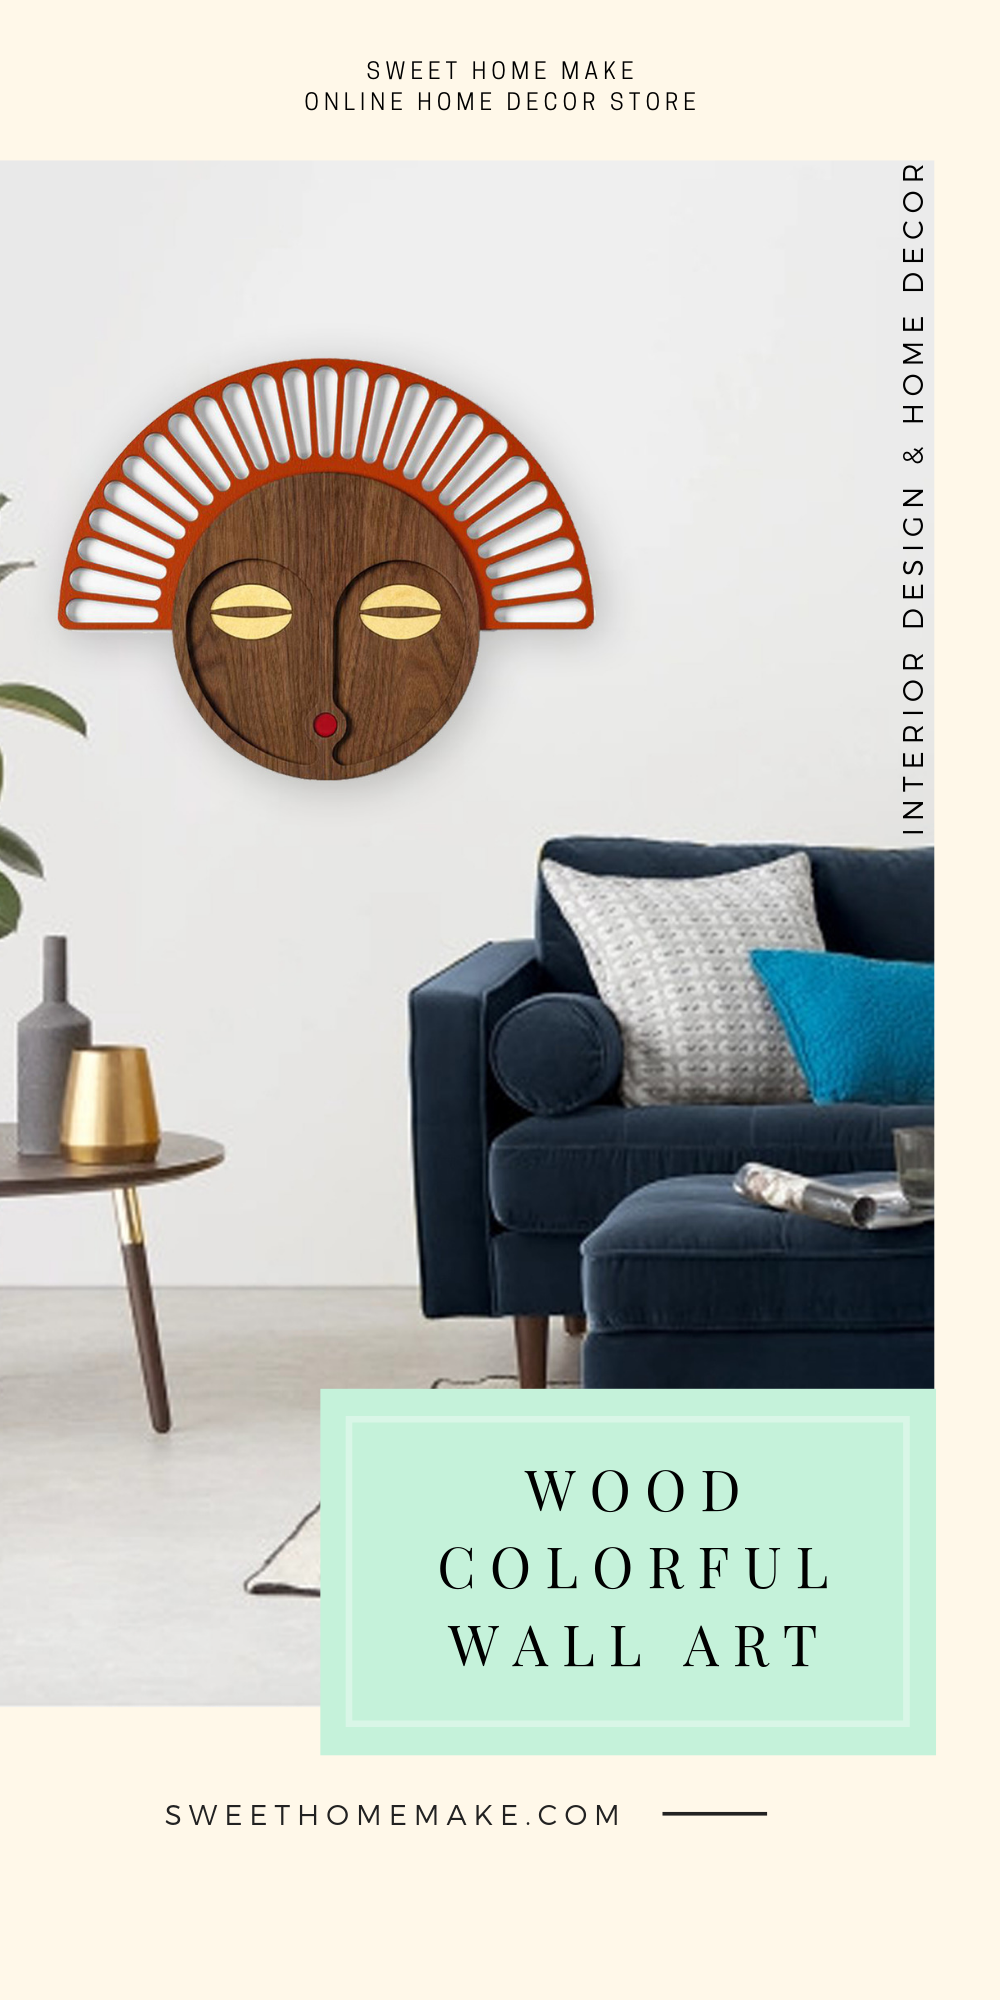 African Wall Mask with Carved Wood Wall Art